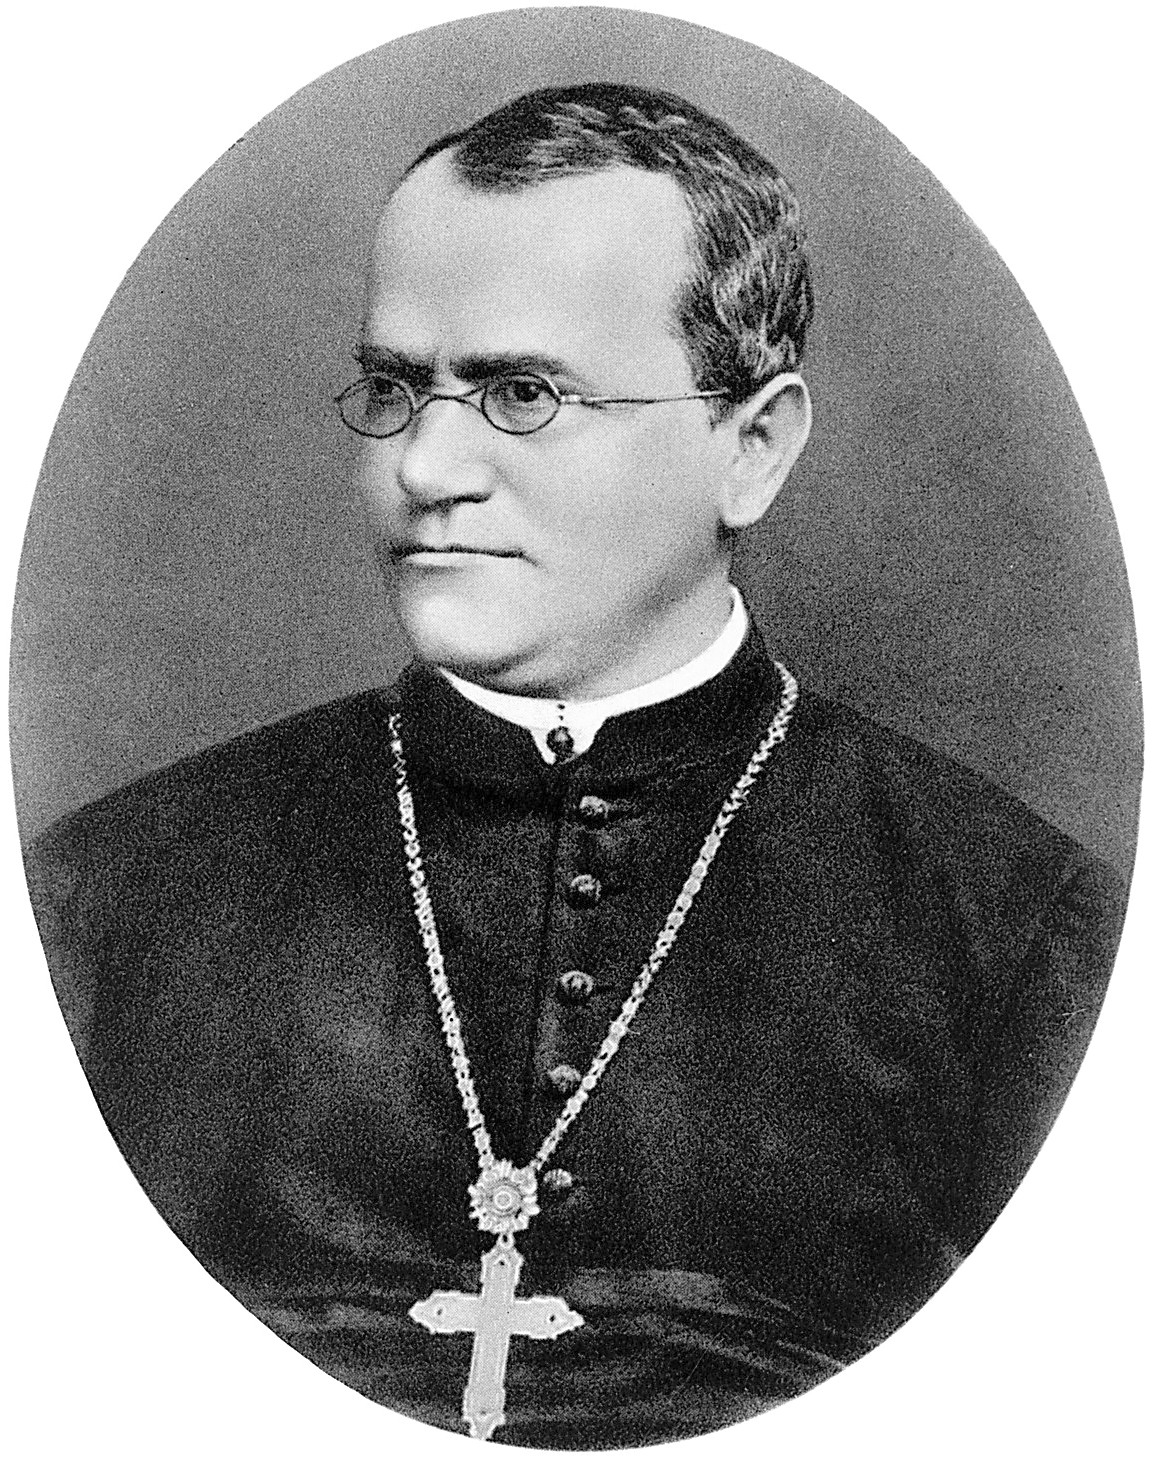 gregor mendels theories of genetic inheritance One major difficulty with darwin's theory of evolution by natural selection was   gregor mendel (1822-1884) was trained as a physicist and brought a  of  segregation) there may be two or more alternative forms of a gene.